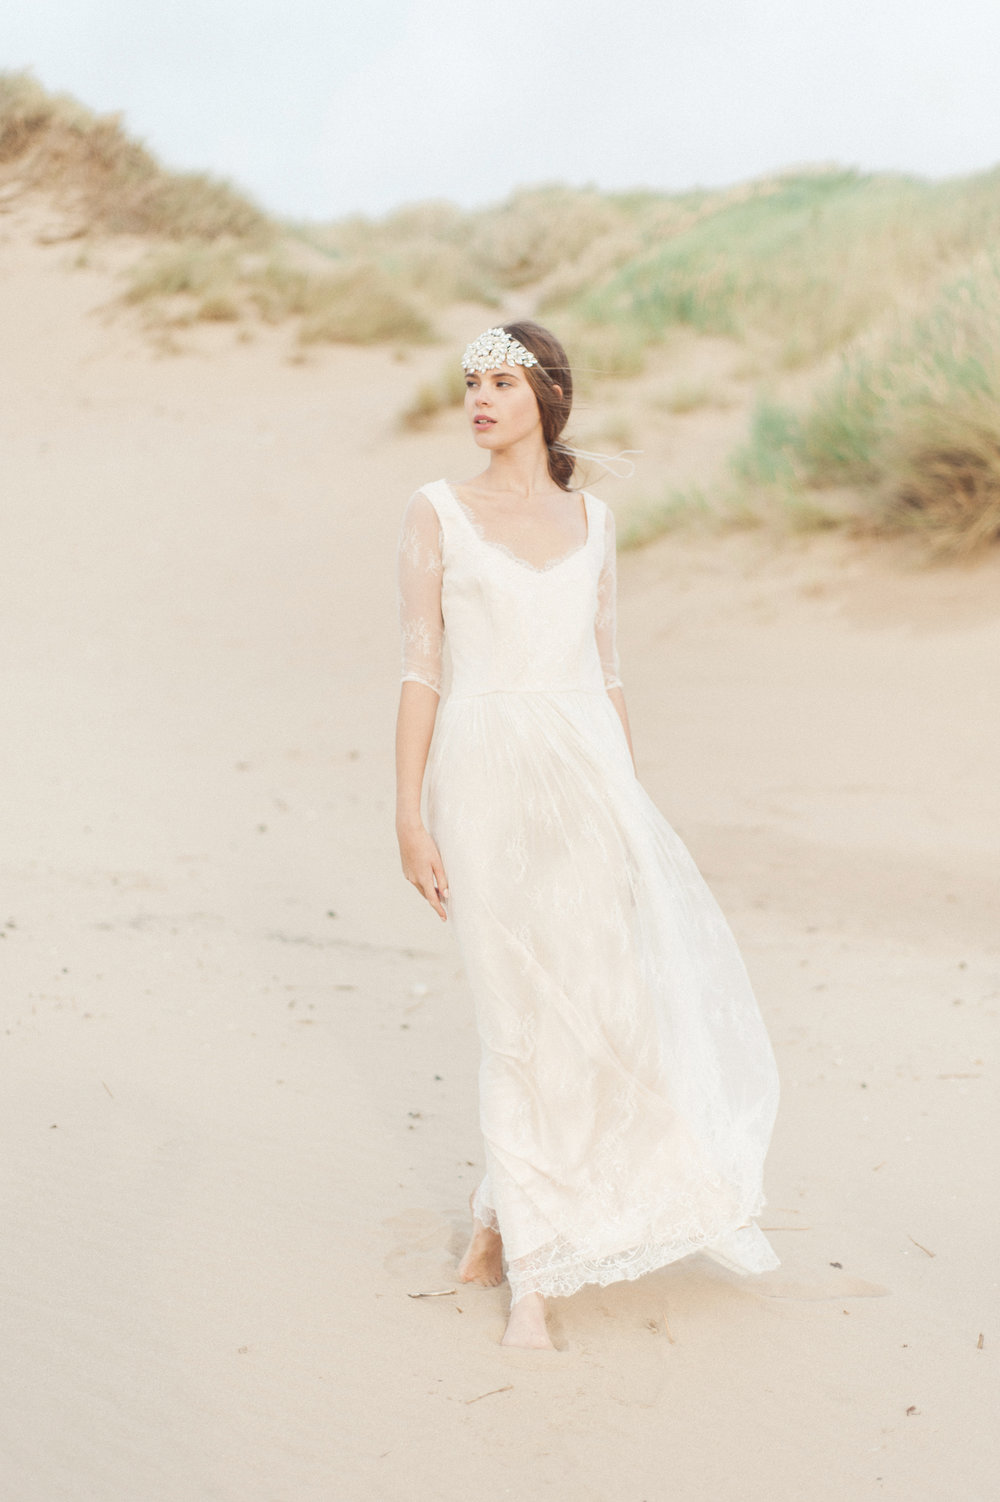 Kate-Beaumont-Wedding-Dresses-Formby-Beach-Emma-Pilkington-30.jpg